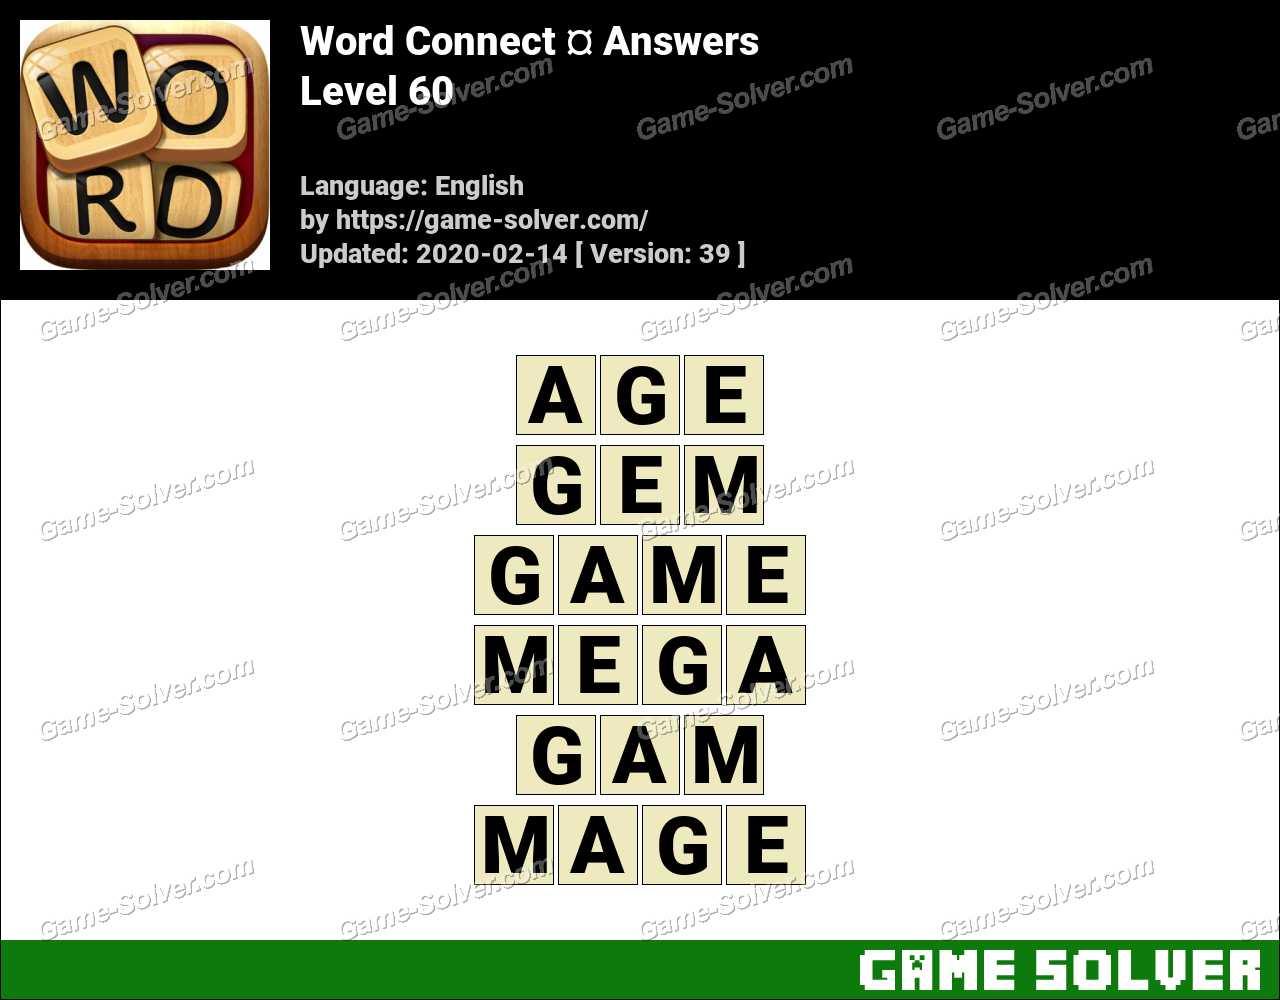 Word Connect Level 60 Answers